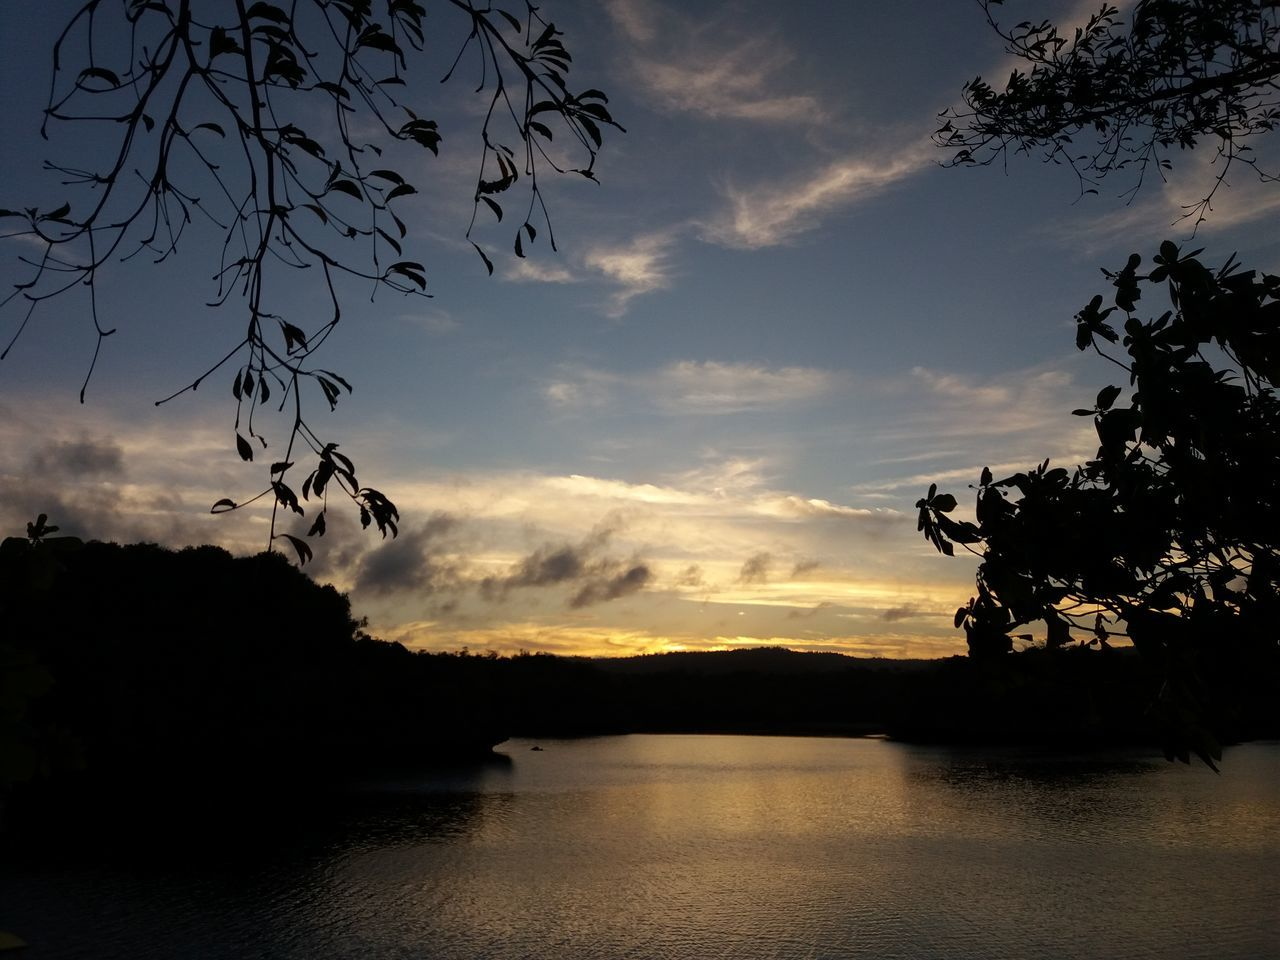 silhouette, nature, beauty in nature, sky, tree, scenics, sunset, flying, water, no people, lake, tranquility, outdoors, tranquil scene, bird, mountain, animal themes, spread wings, day